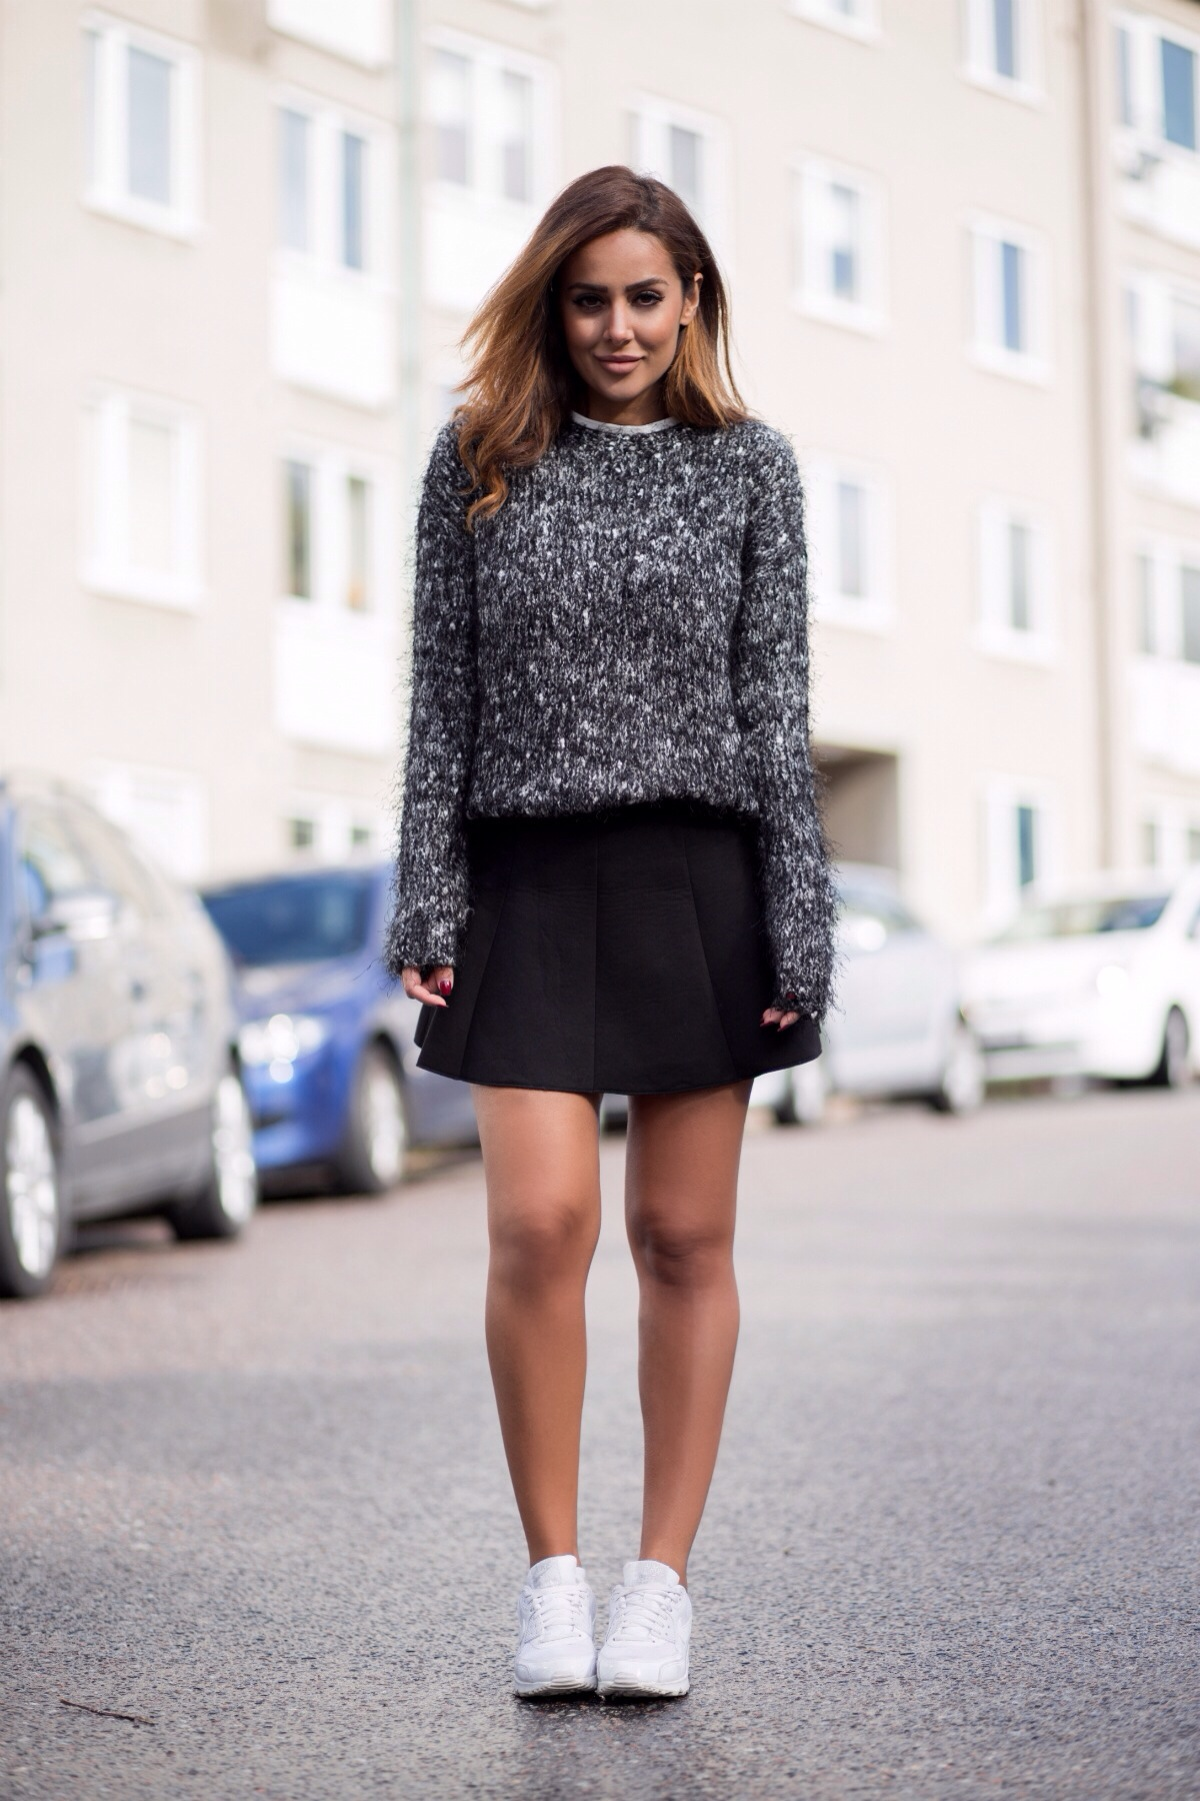 Sharareh Sophia Hosseini is wearing a black and white fluffy jumper from BikBok